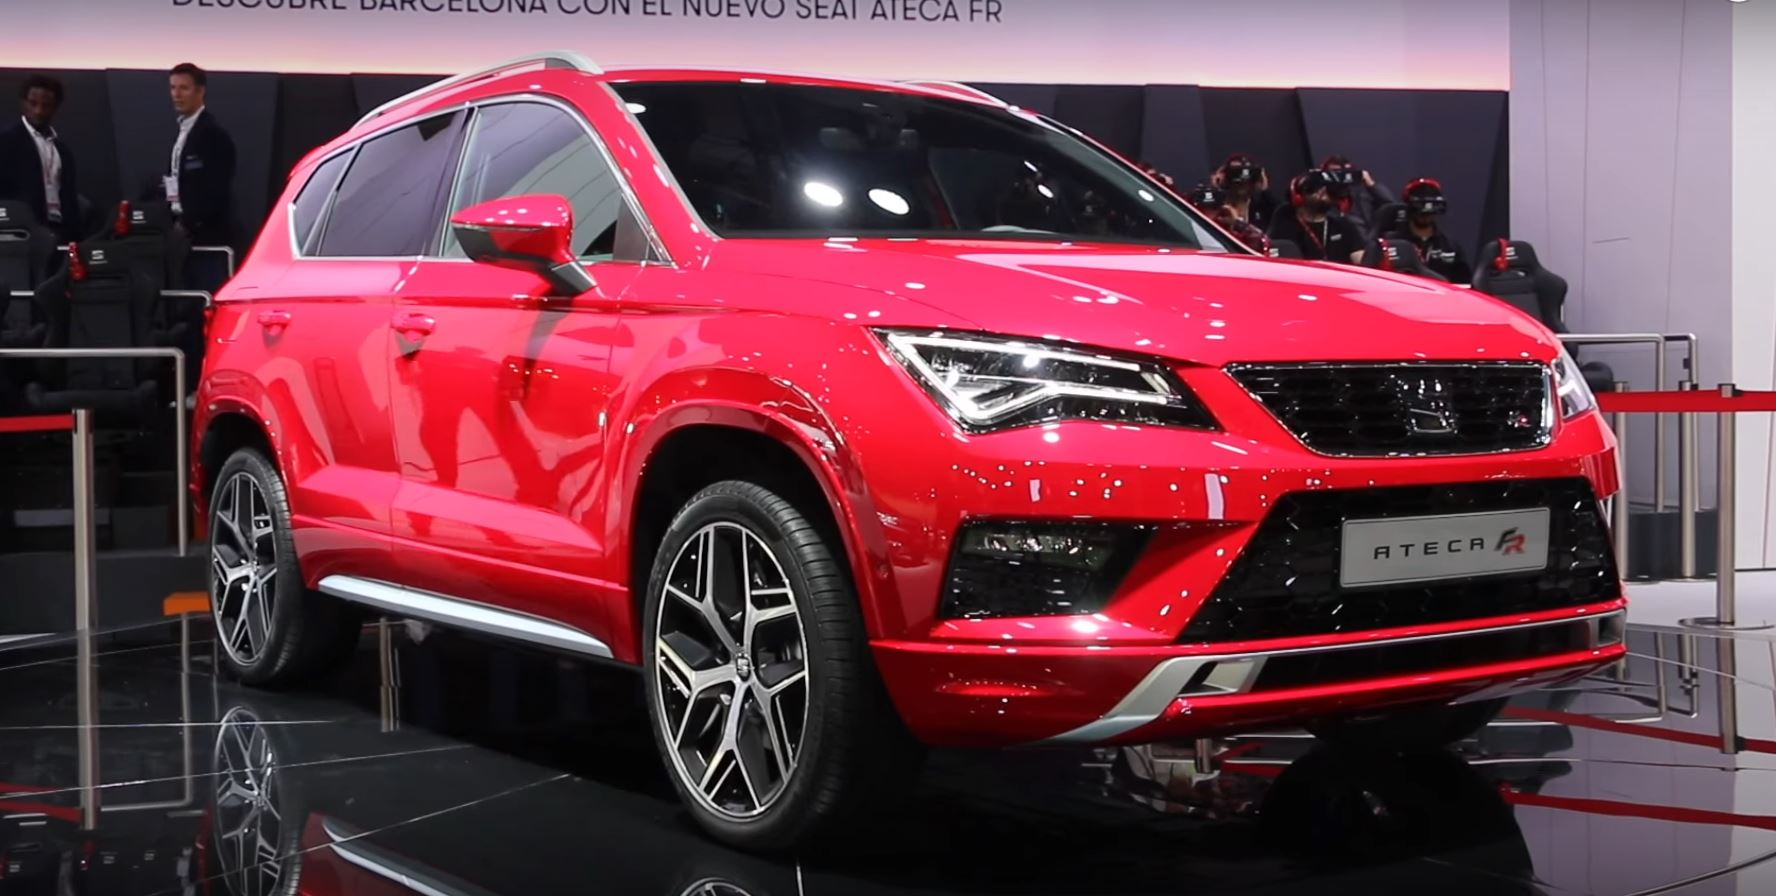 seat ateca fr shown in barcelona looks cool in red autoevolution. Black Bedroom Furniture Sets. Home Design Ideas